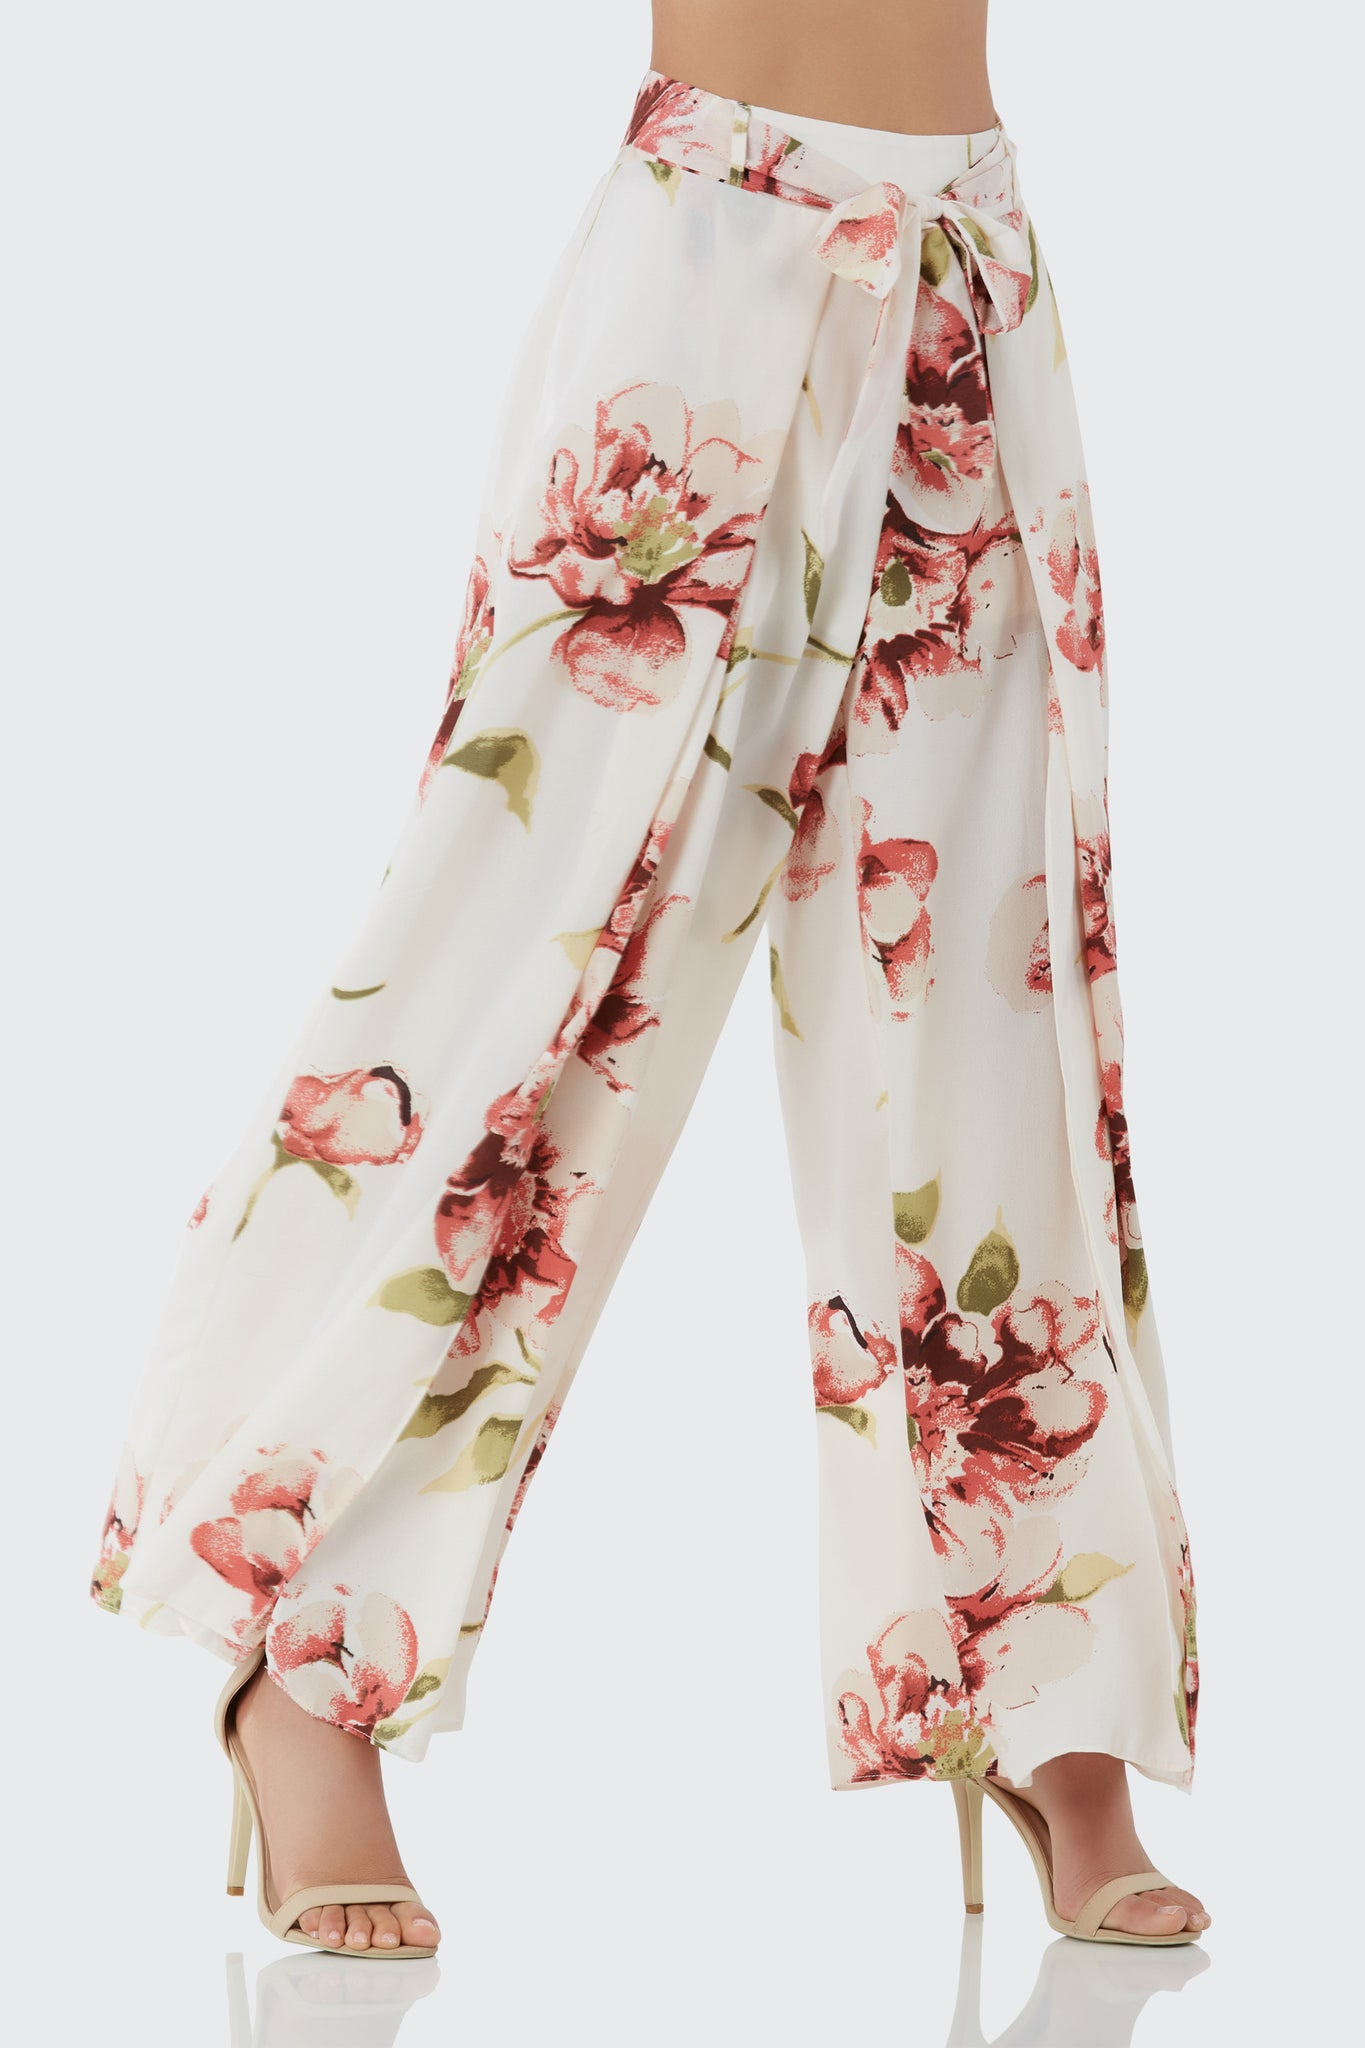 High rise printed pants with floral patterns throughout. Waist tie detailing with bold slits on each side.